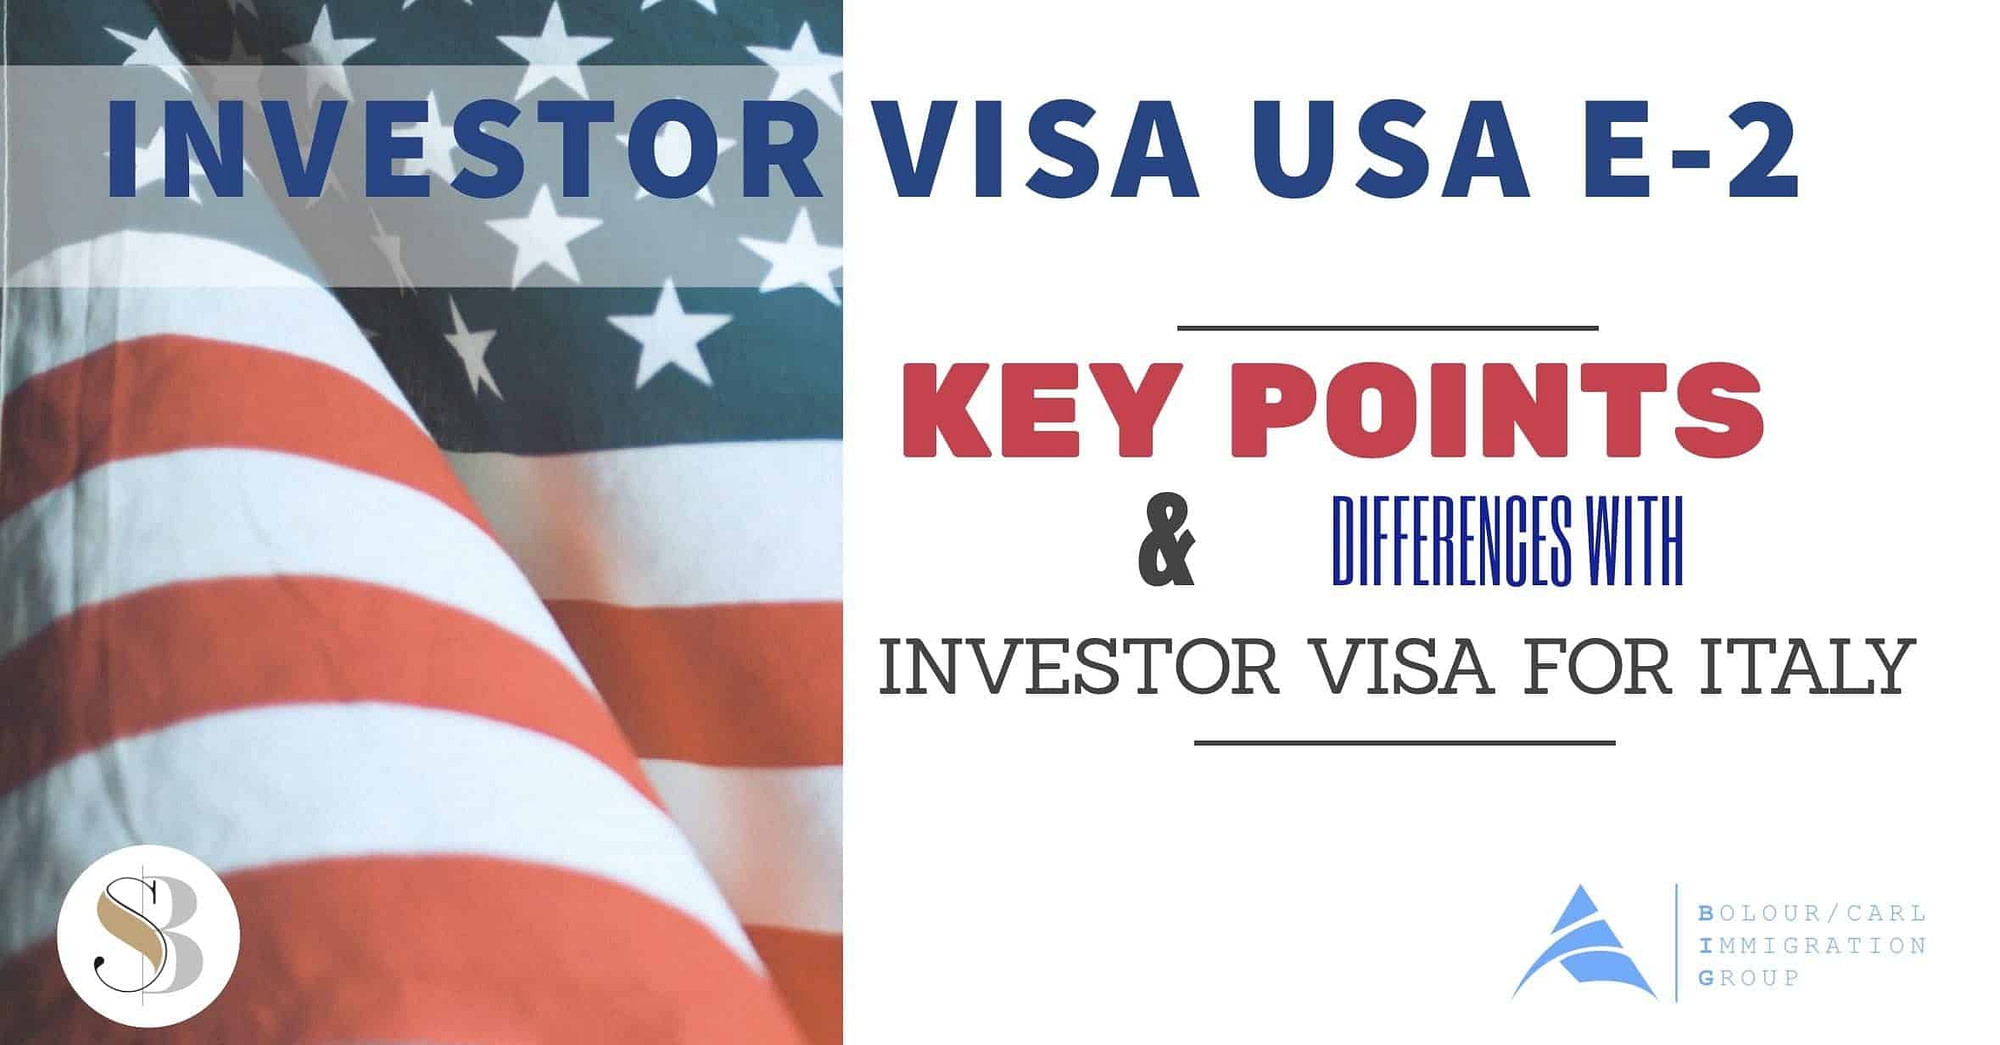 INVESTOR-VISA-USA-E2-Investor-Visa-Italy-Residency-Program-ITALY-INVESTOR-VISA-REQUIREMENTS-investor-visa-for-italy-italy-investor-visa-investor-Visa-Italy-italian-investor-visa-italy-golden-visa-investor-golden-visa-italy-investor-visa-itay-investment-visa-investor-visa-italy-program-italian-investor-visa-assistance